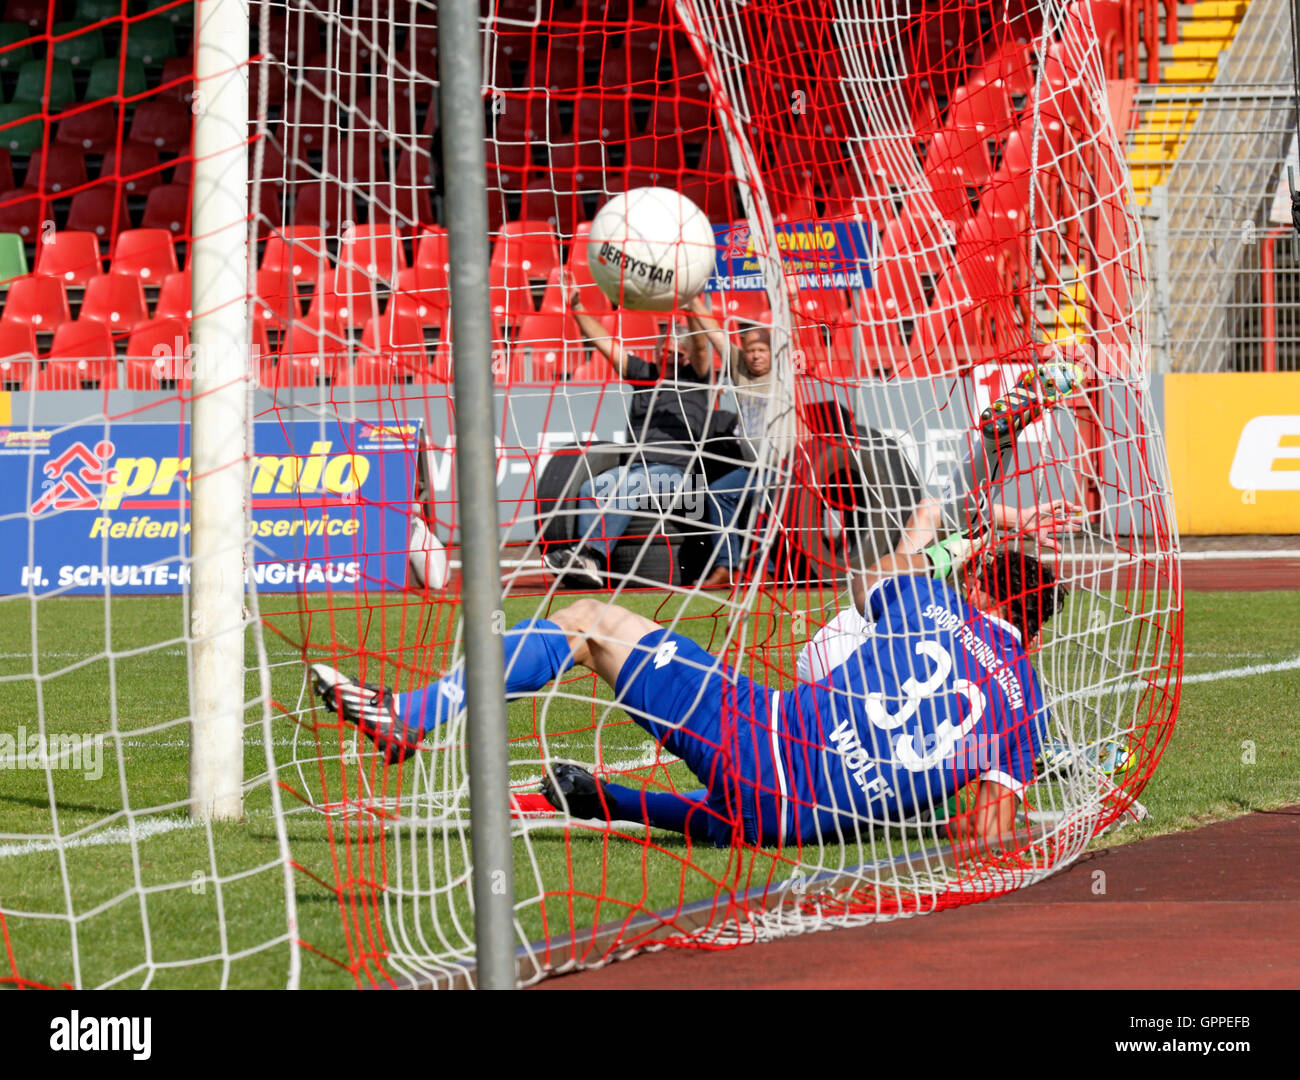 sports, football, Regional League West, 2016/2017, Rot Weiss Oberhausen versus Sportfreunde Siegen 7:1, Stadium - Stock Image